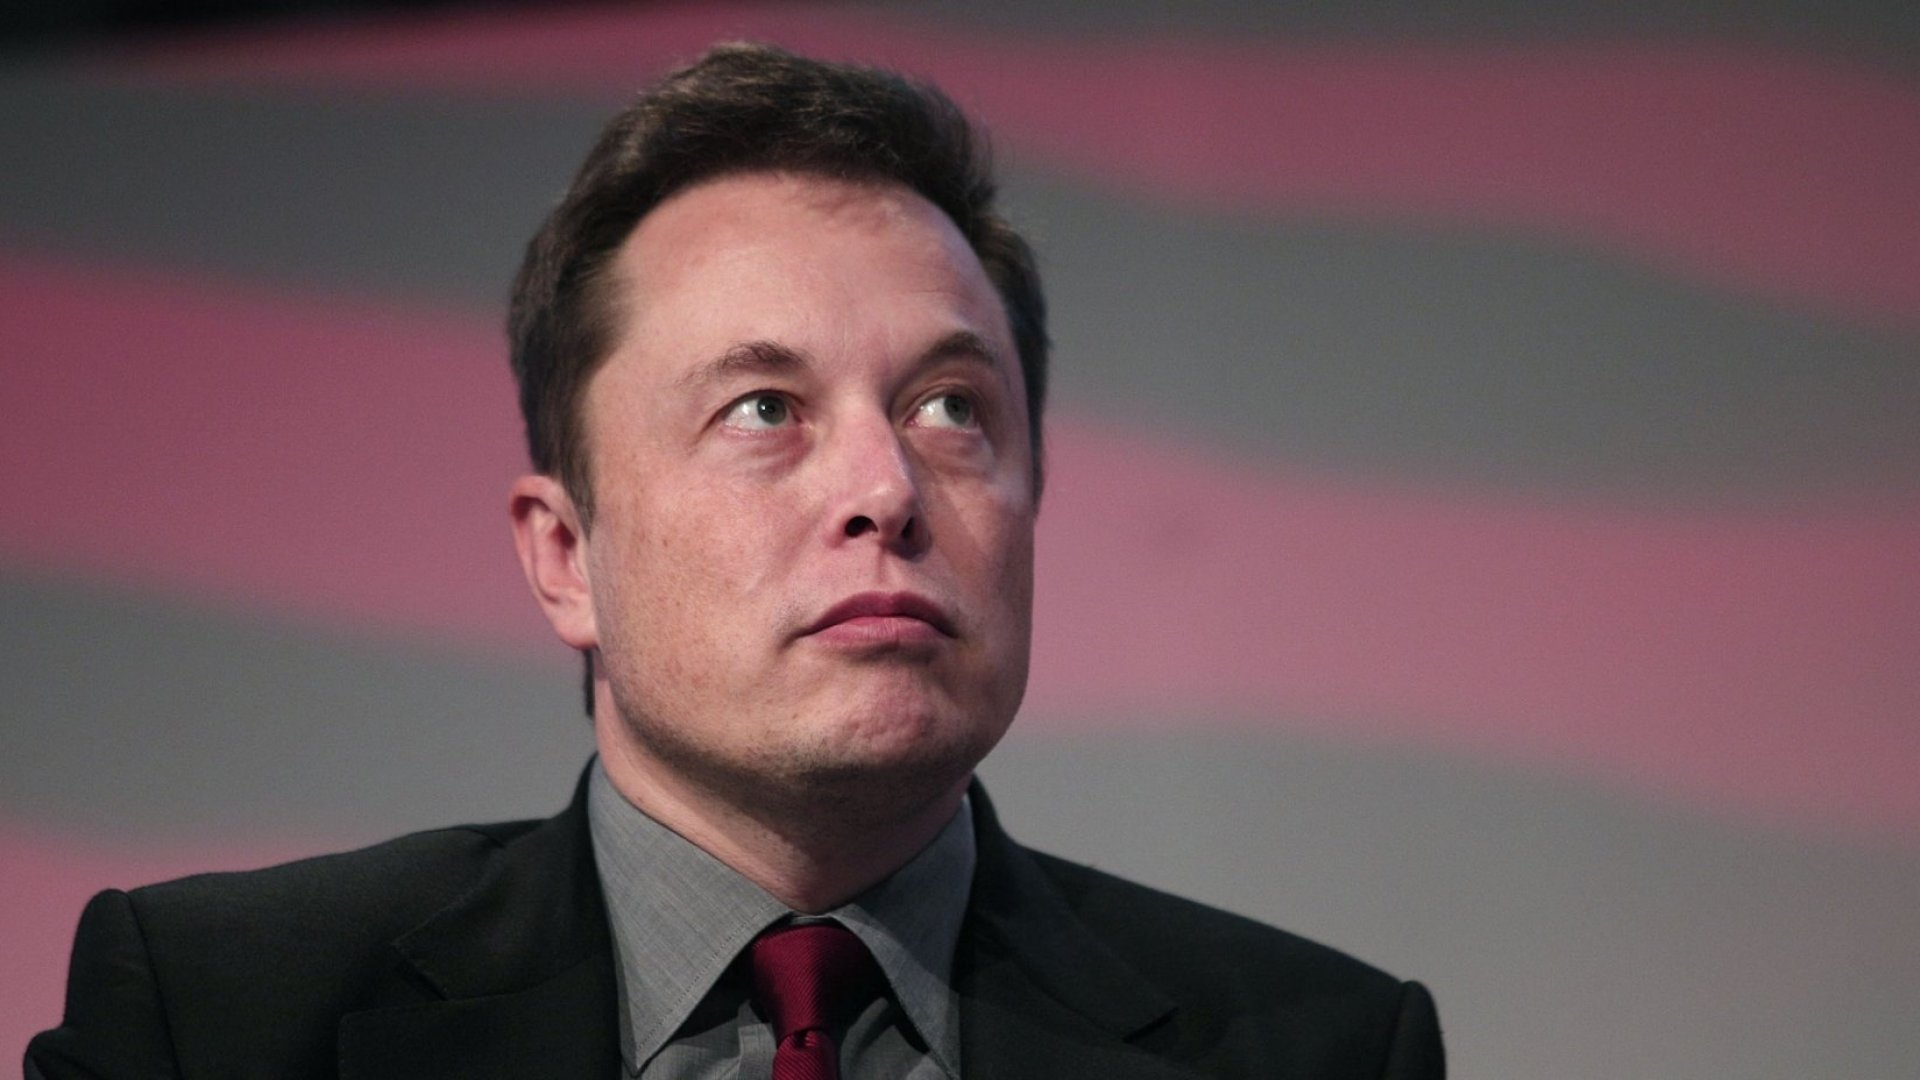 Elon Musk Thinks We Live in the Matrix. Here's Why That's So Dangerous